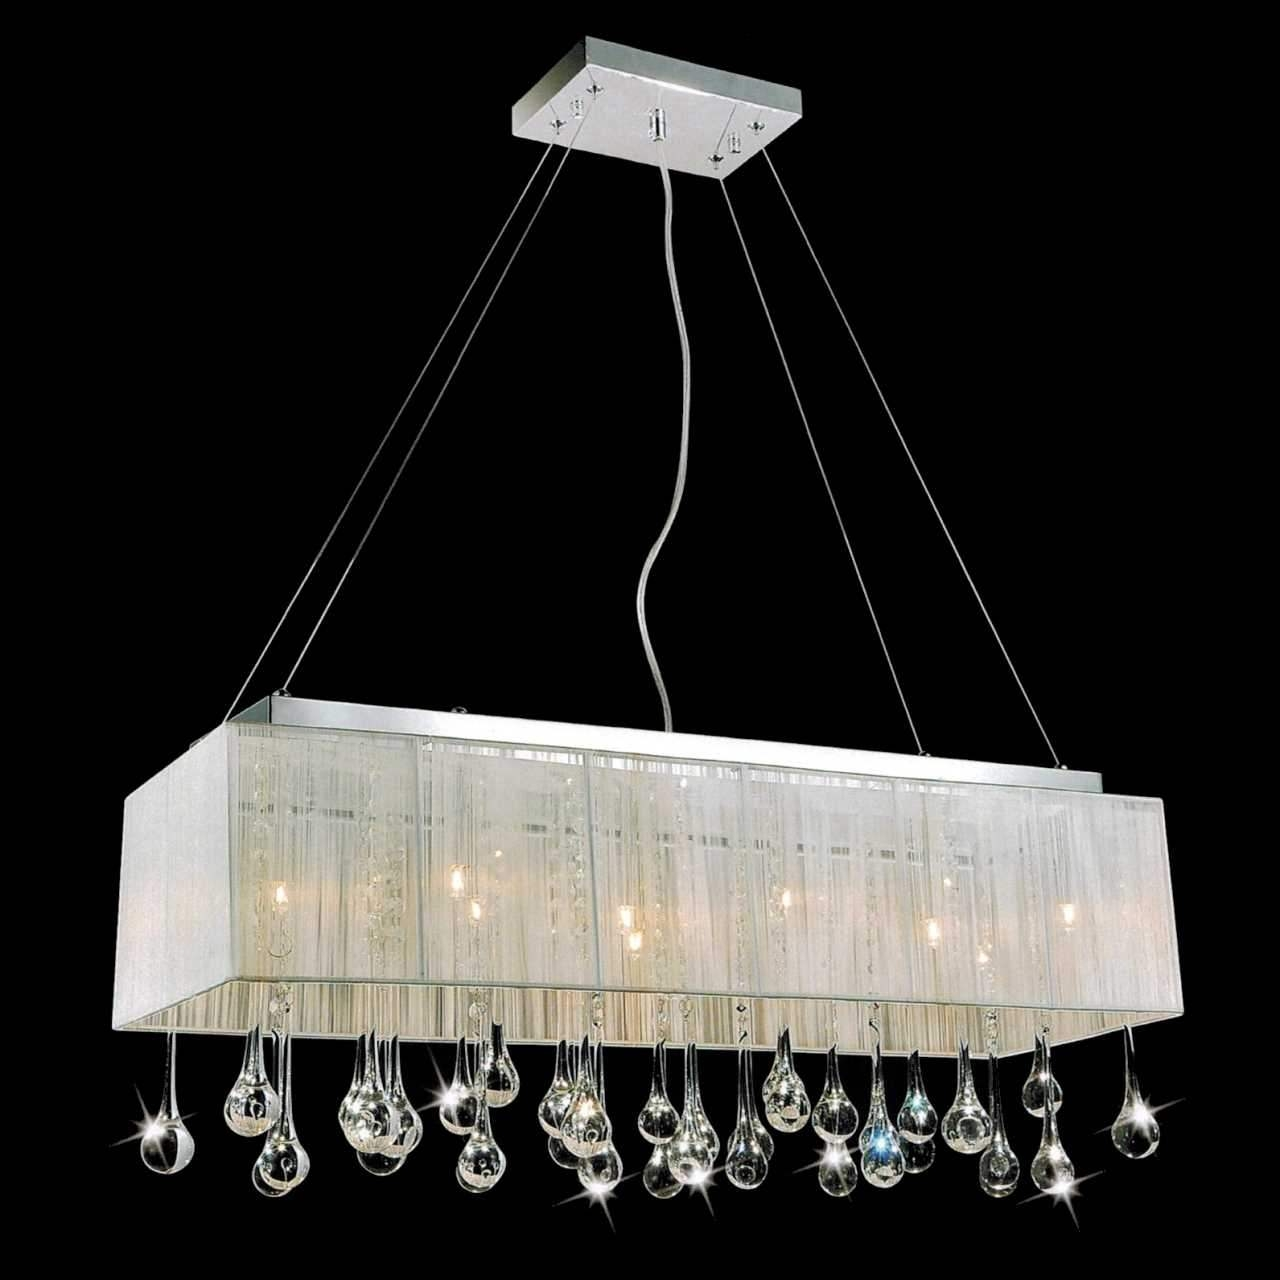 32 Gocce Modern String Shade Crystal Rectangular Chandelier Throughout Modern Silver Chandelier (Image 2 of 15)